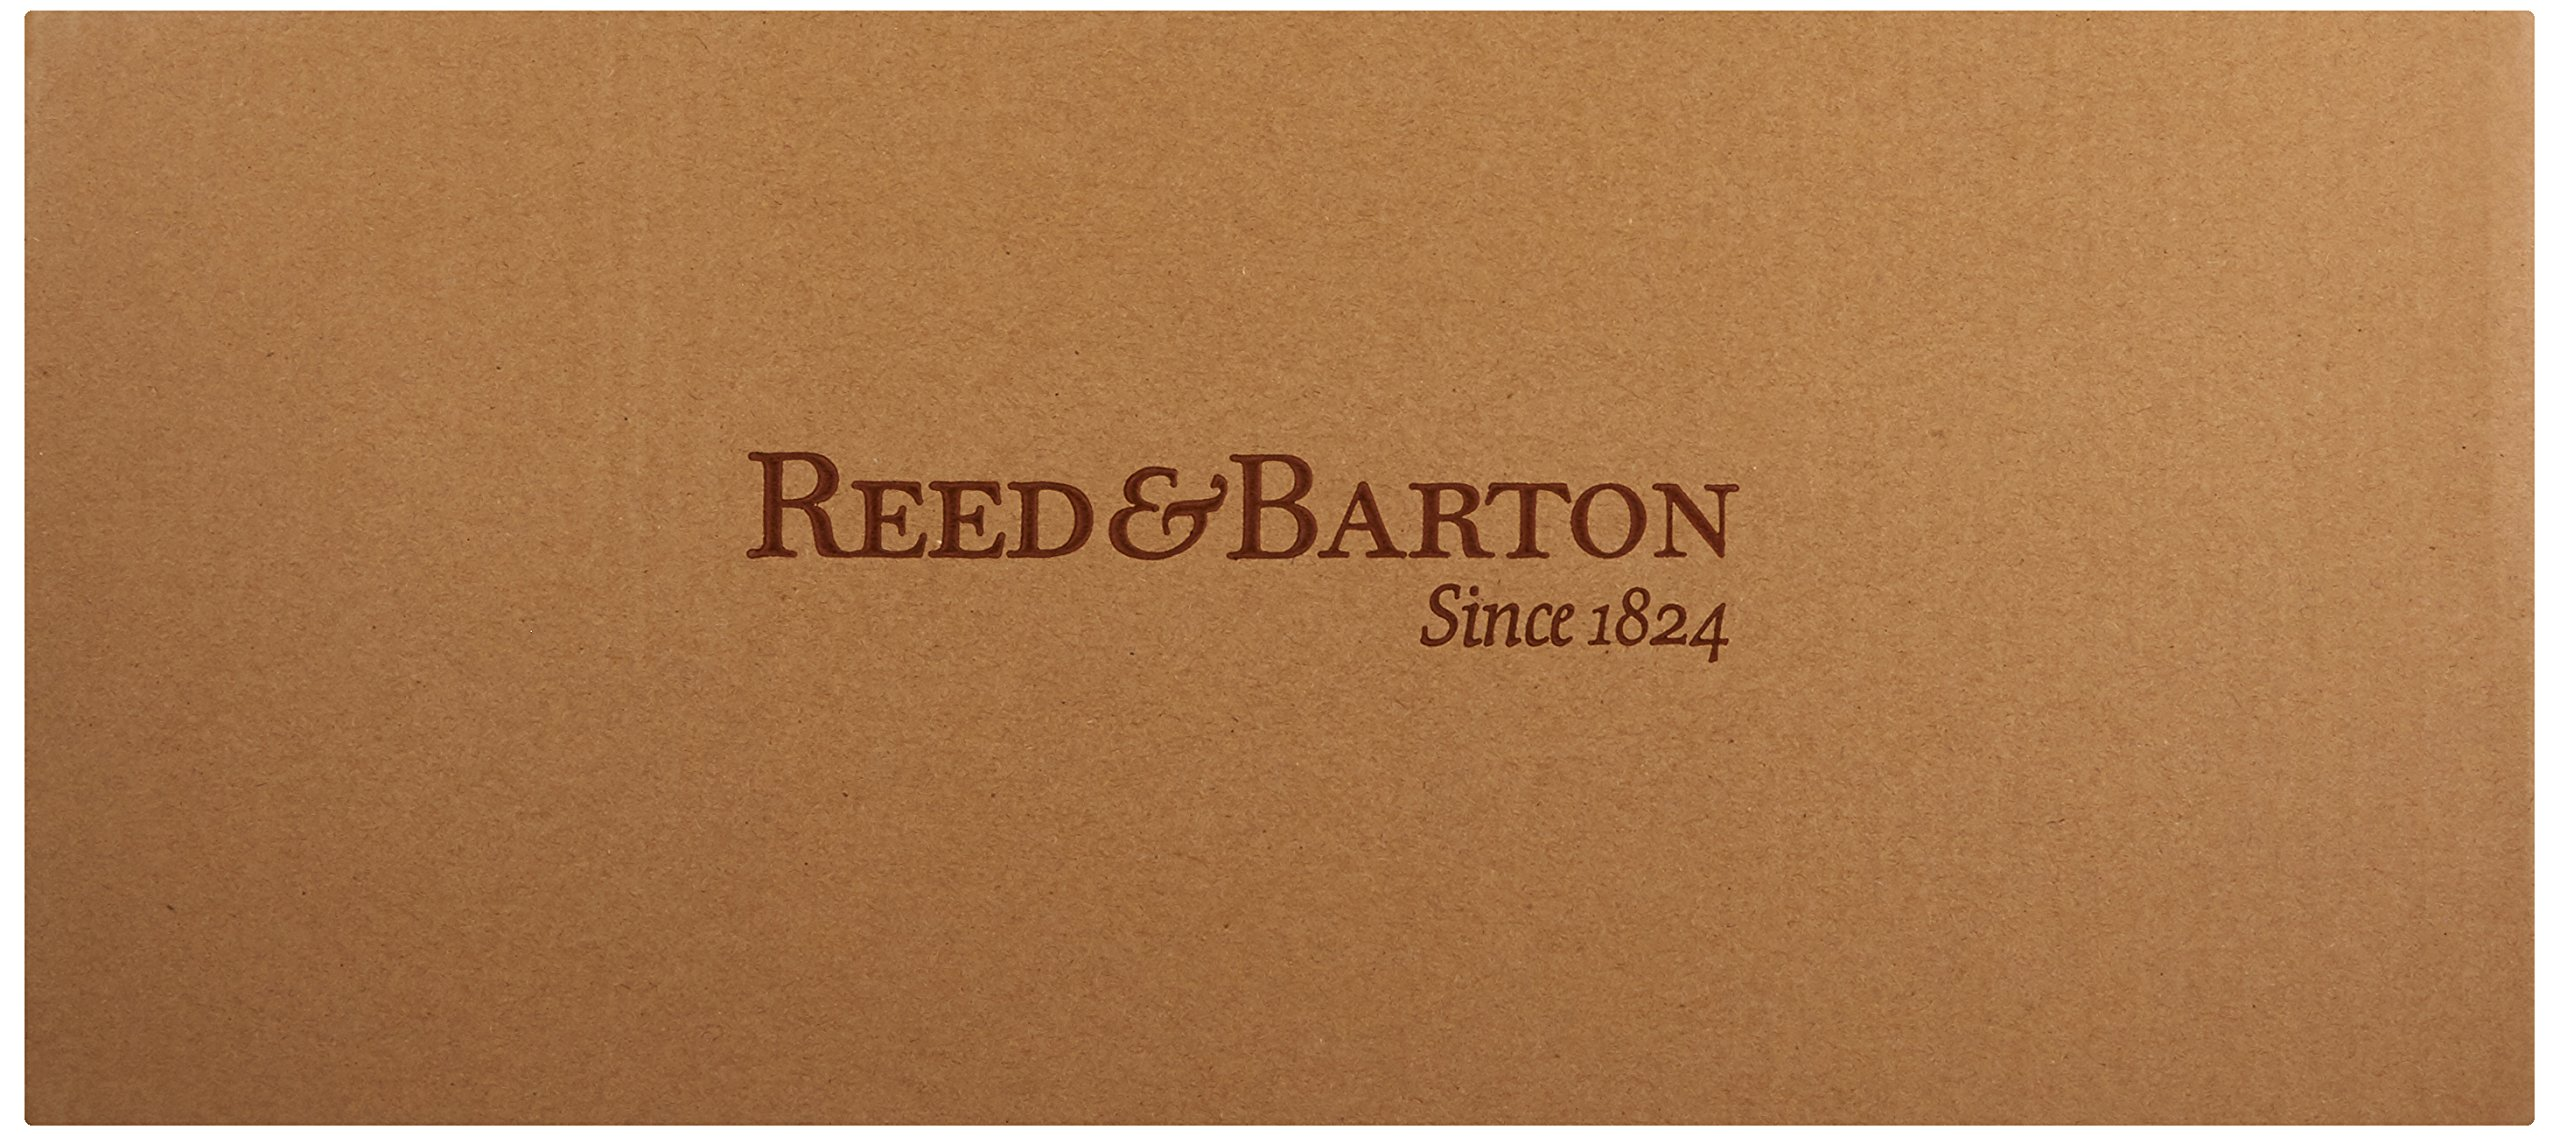 Reed & Barton Bristol Flatware Chest by Reed & Barton (Image #2)